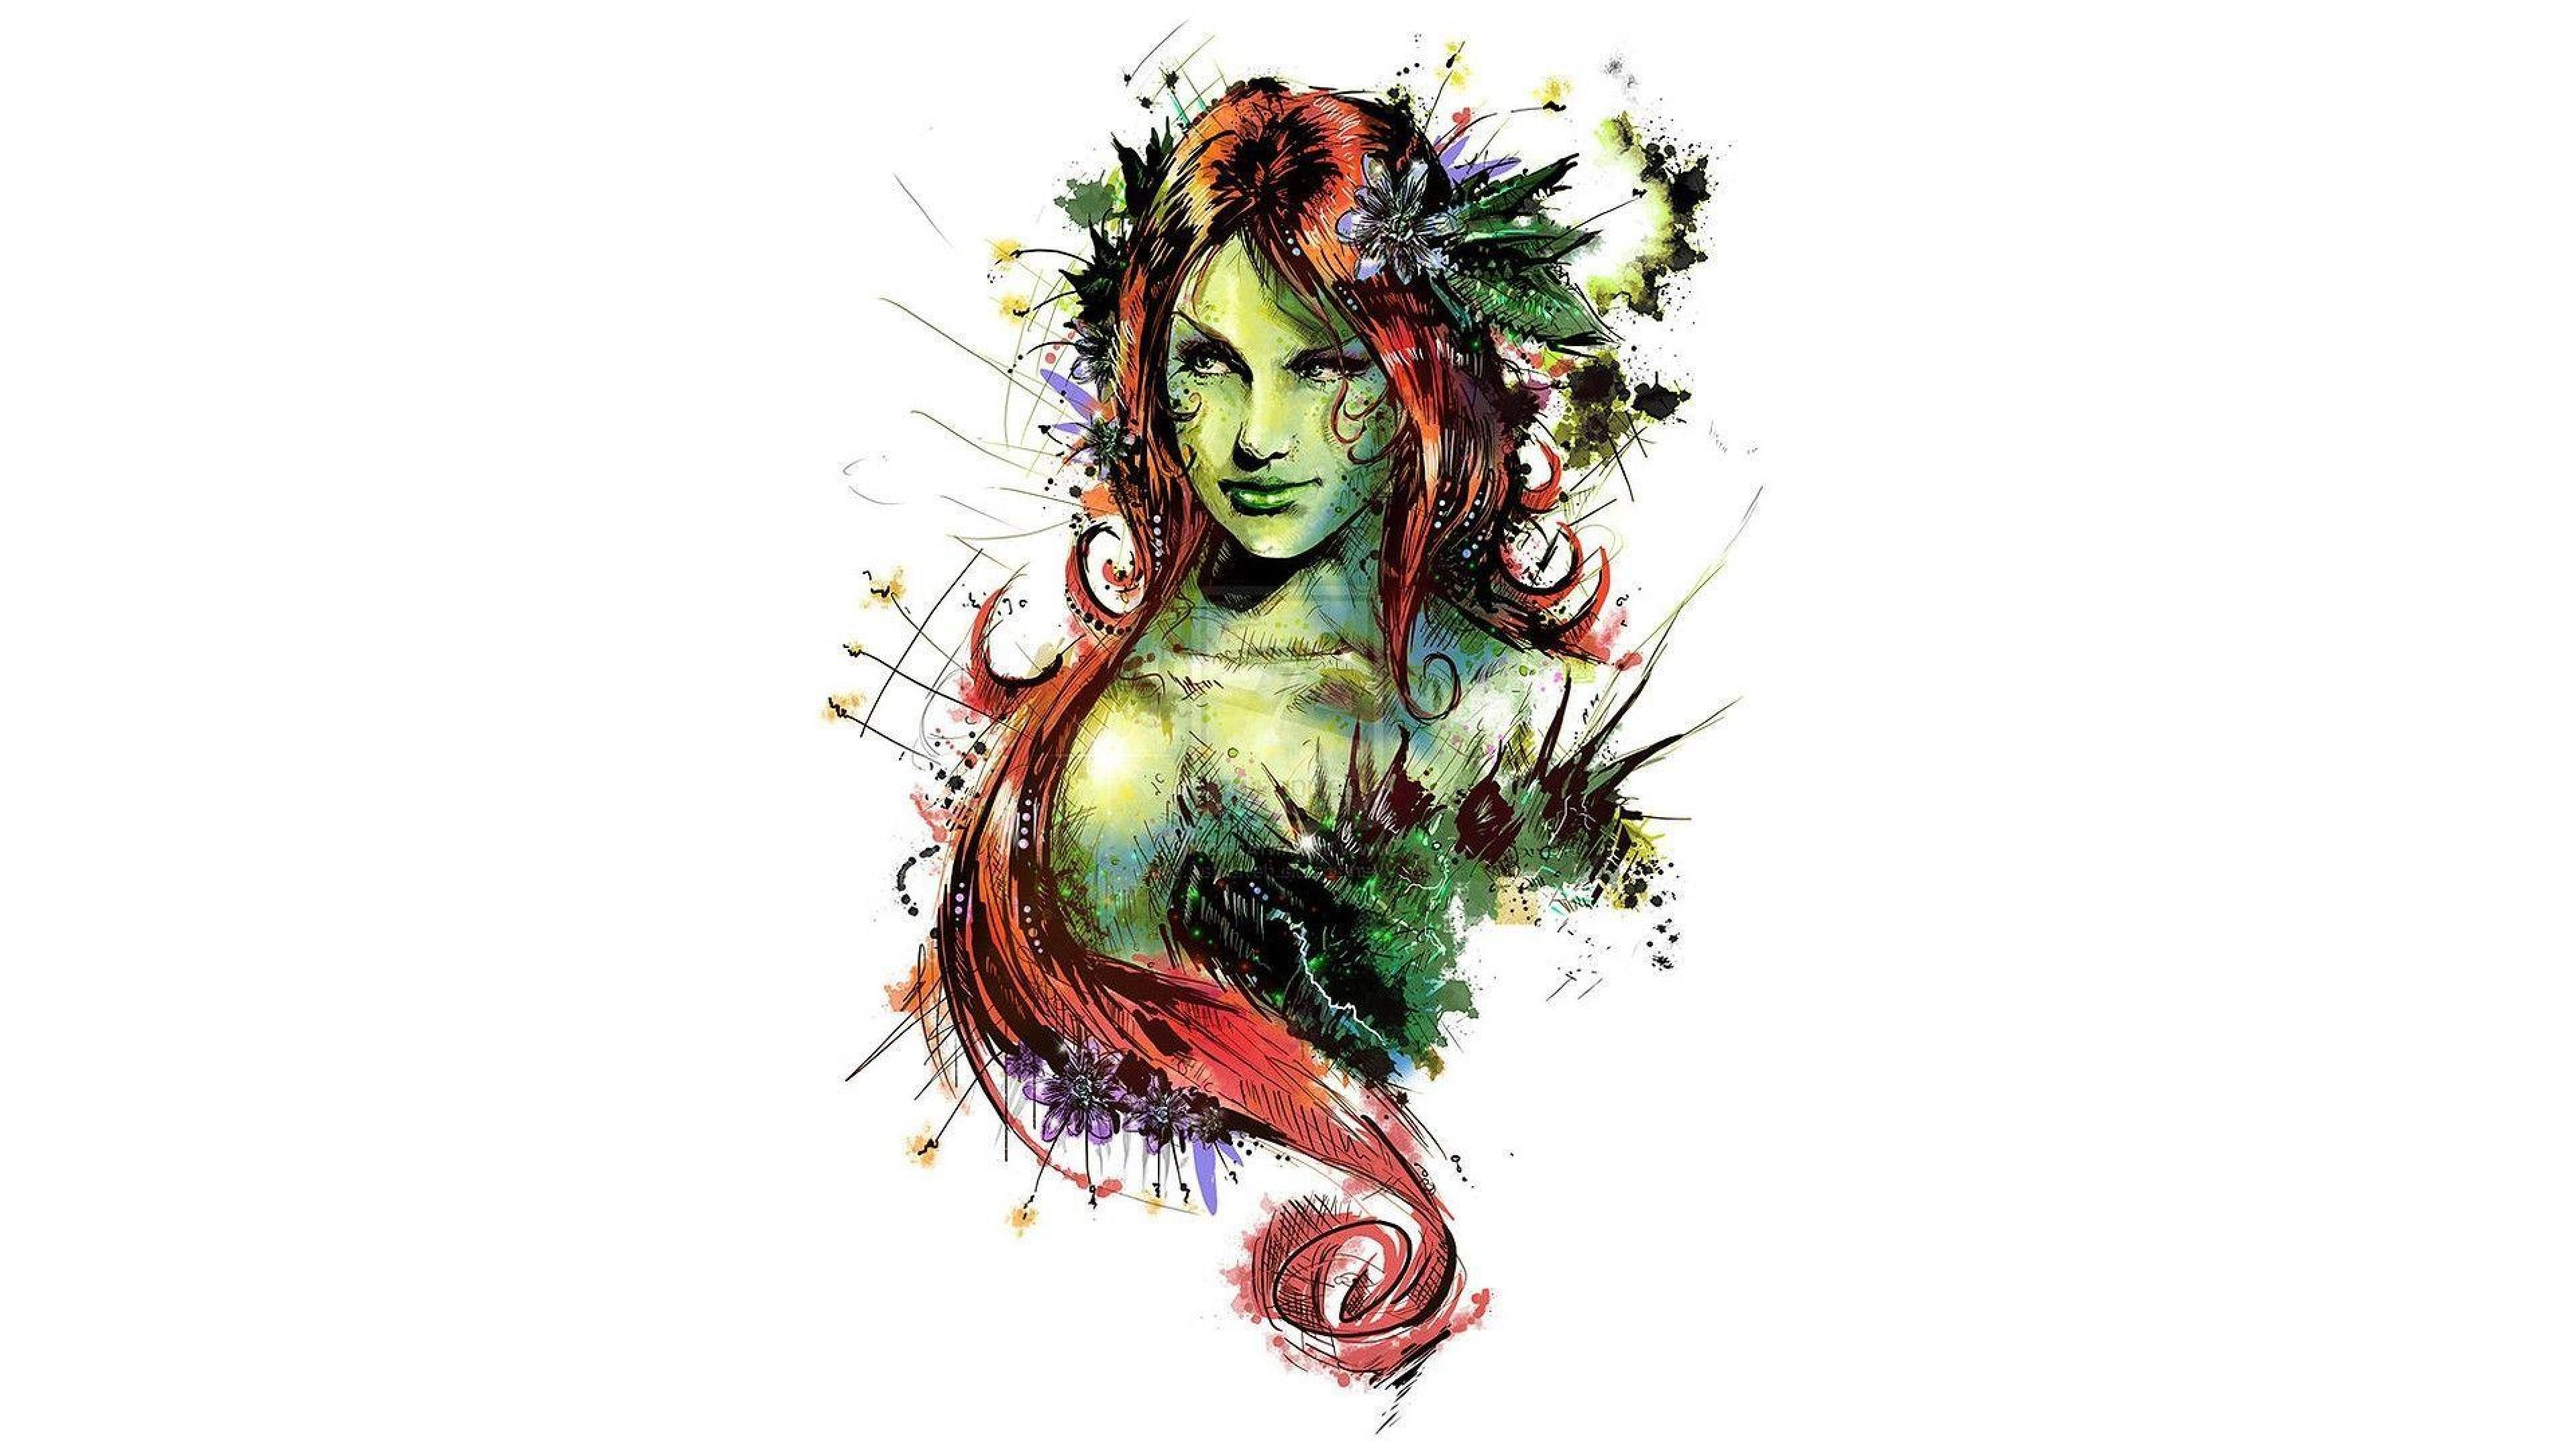 3840x2160 DC Ivy Comics Poison Poison ivy HD Wallpapers, Desktop ...